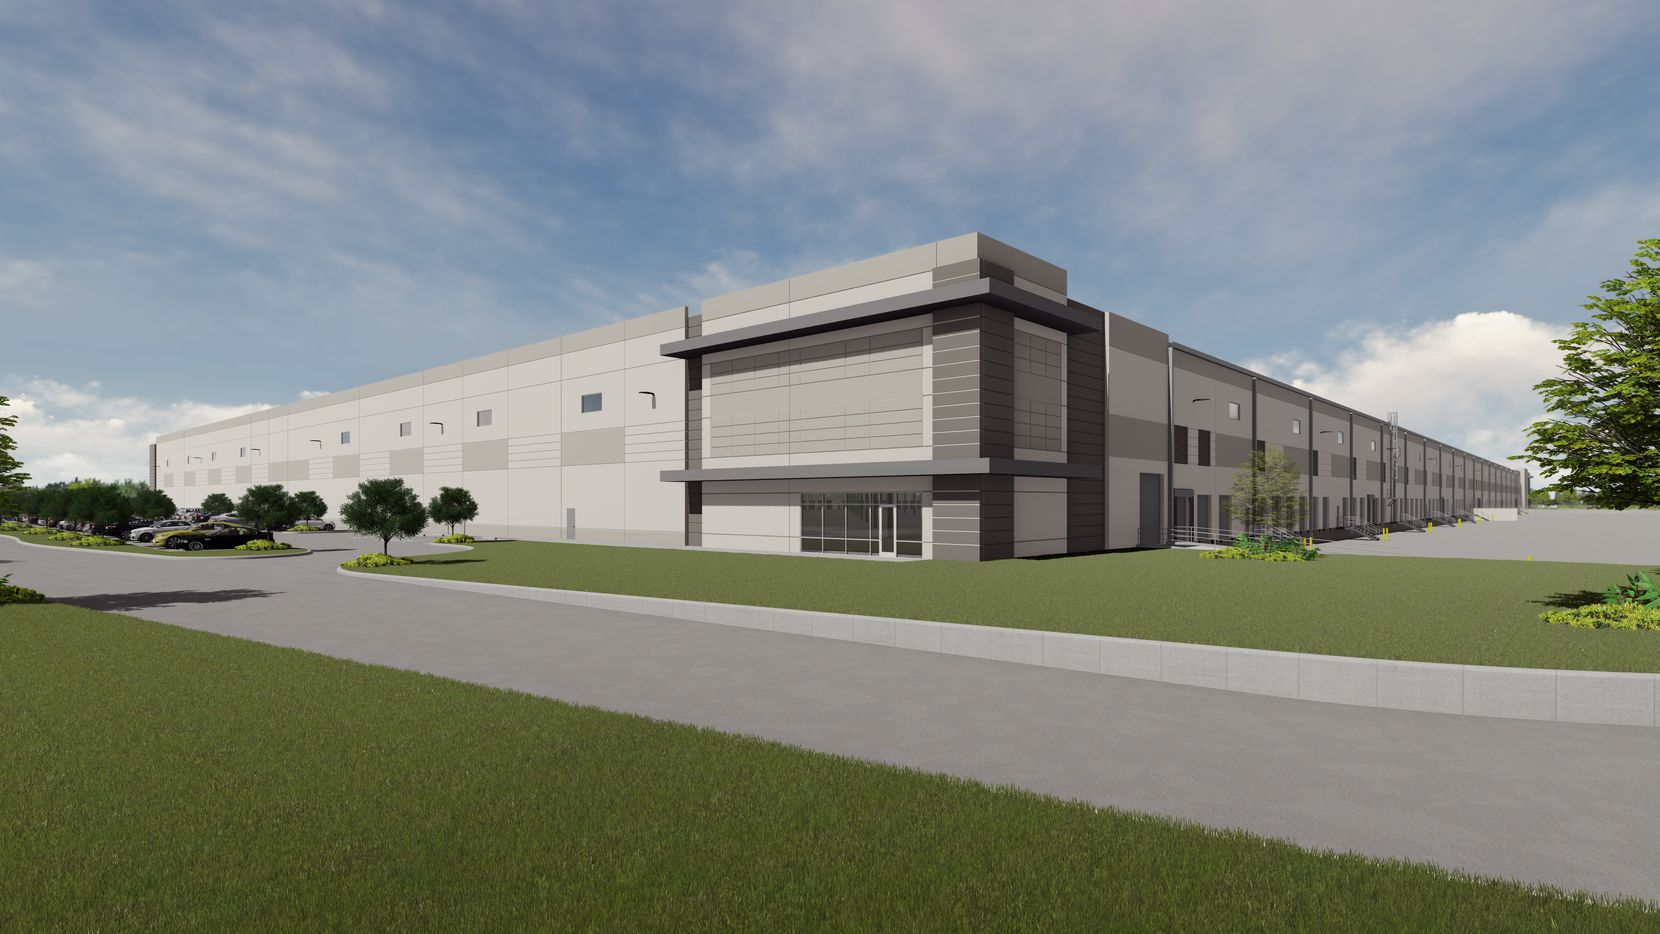 The first phase of the 75-acre Fort Worth Logistics Hub is under construction I-35W.